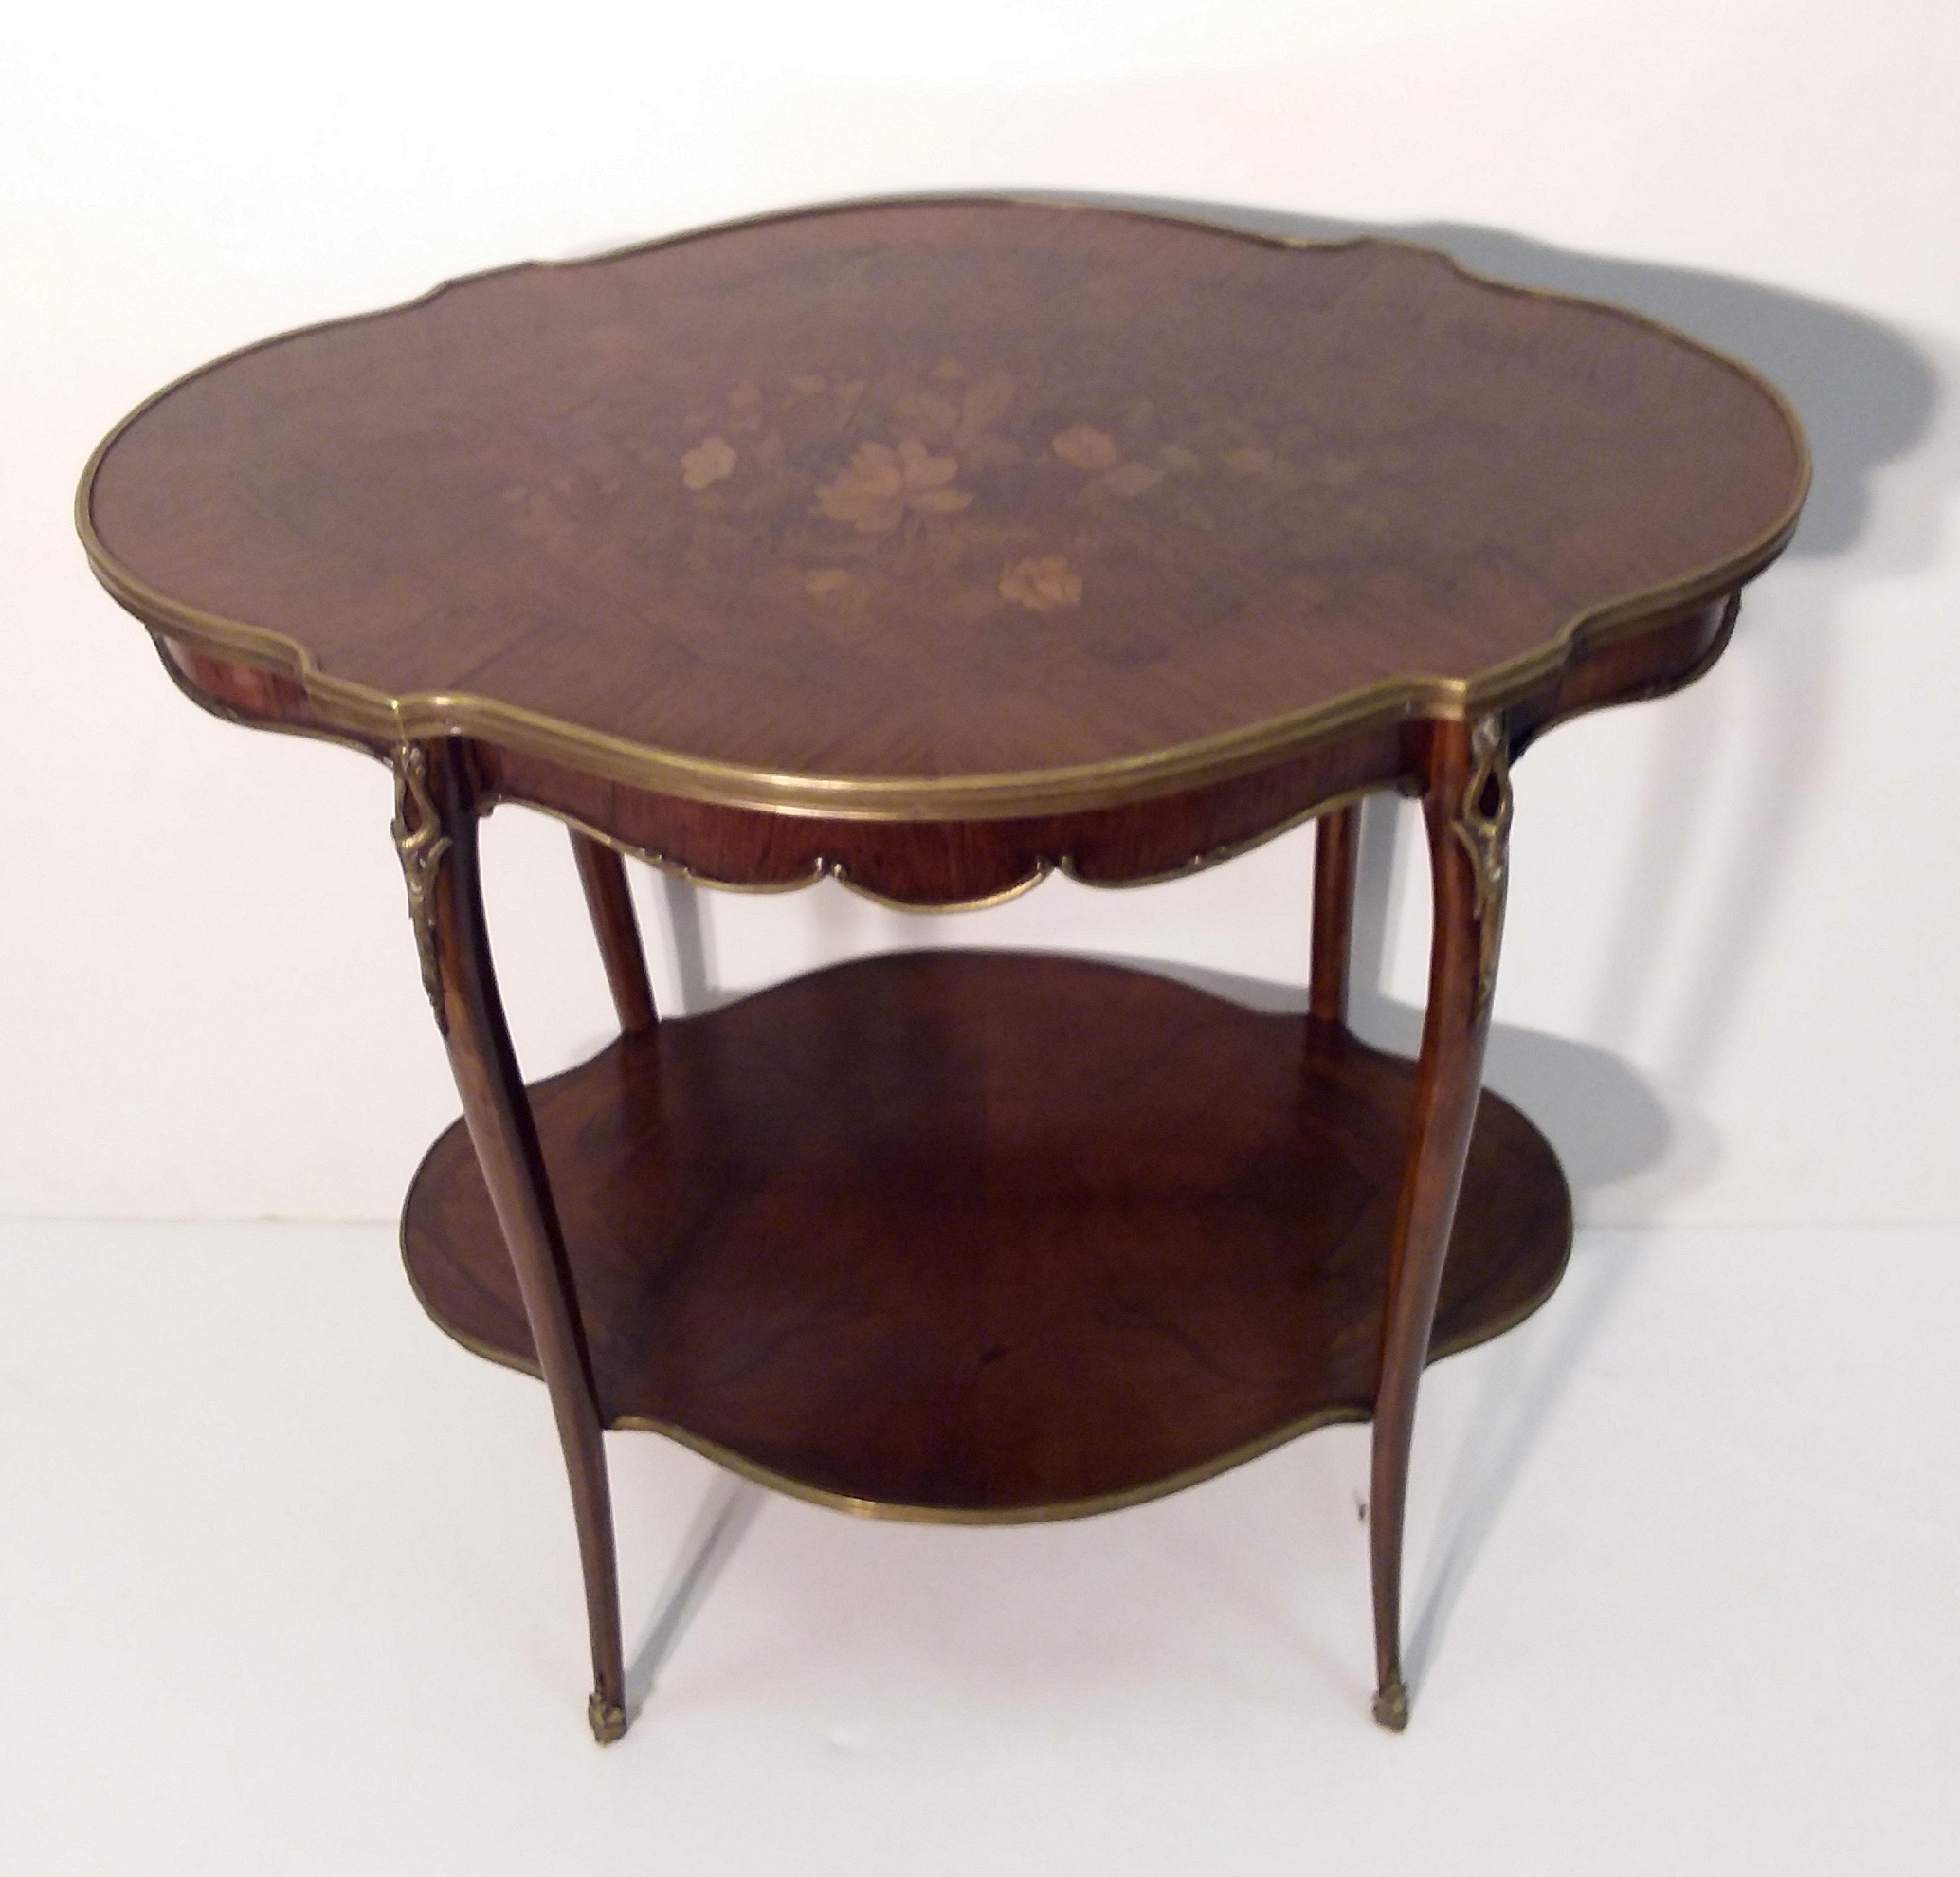 Antique Style French Ormolu Occasional Table – Reilly Antiques